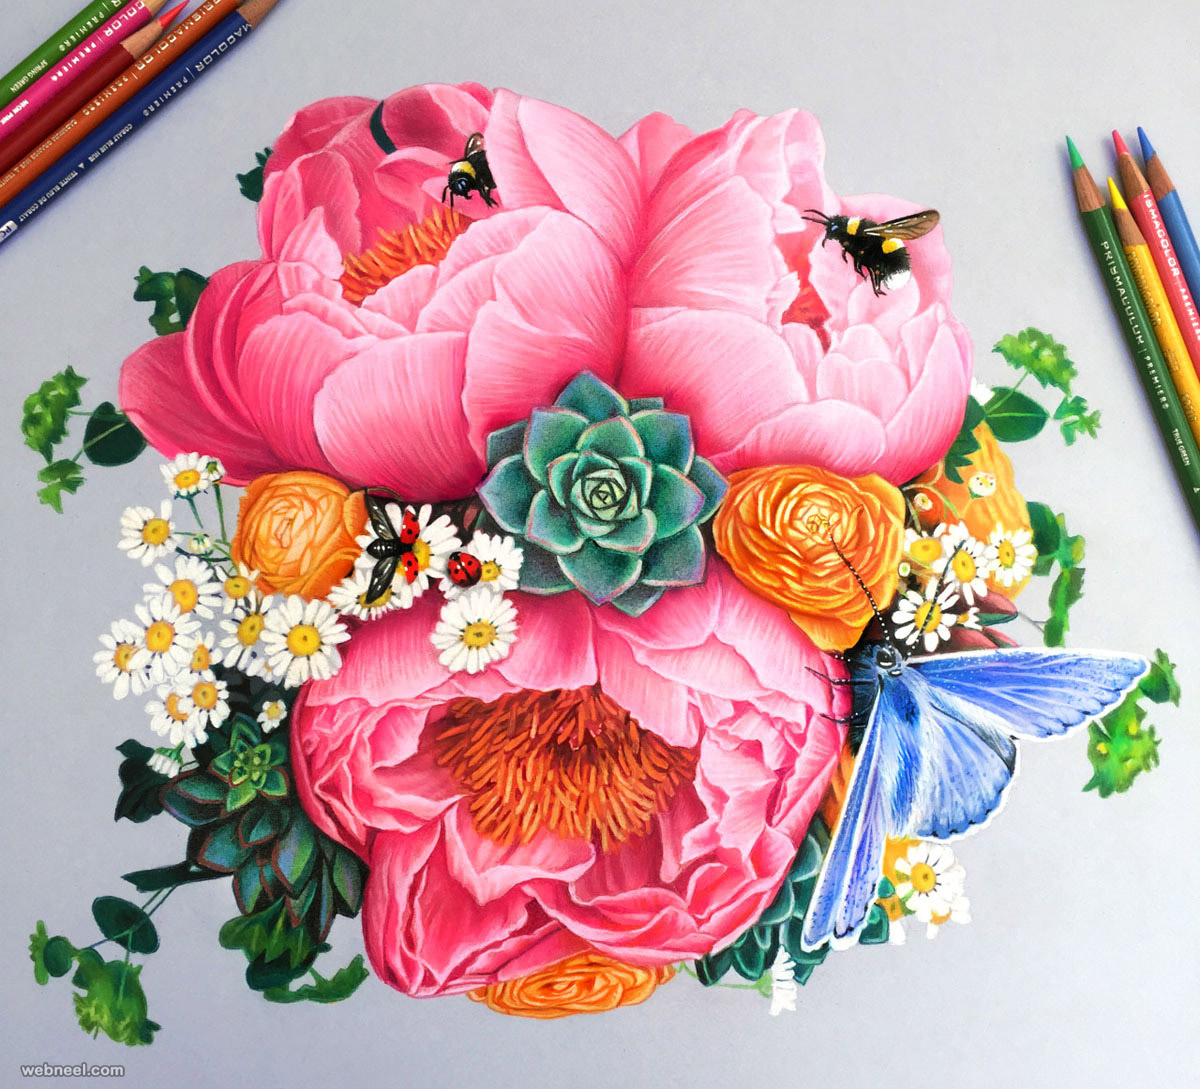 flowers color pencil drawing by morgan davidson